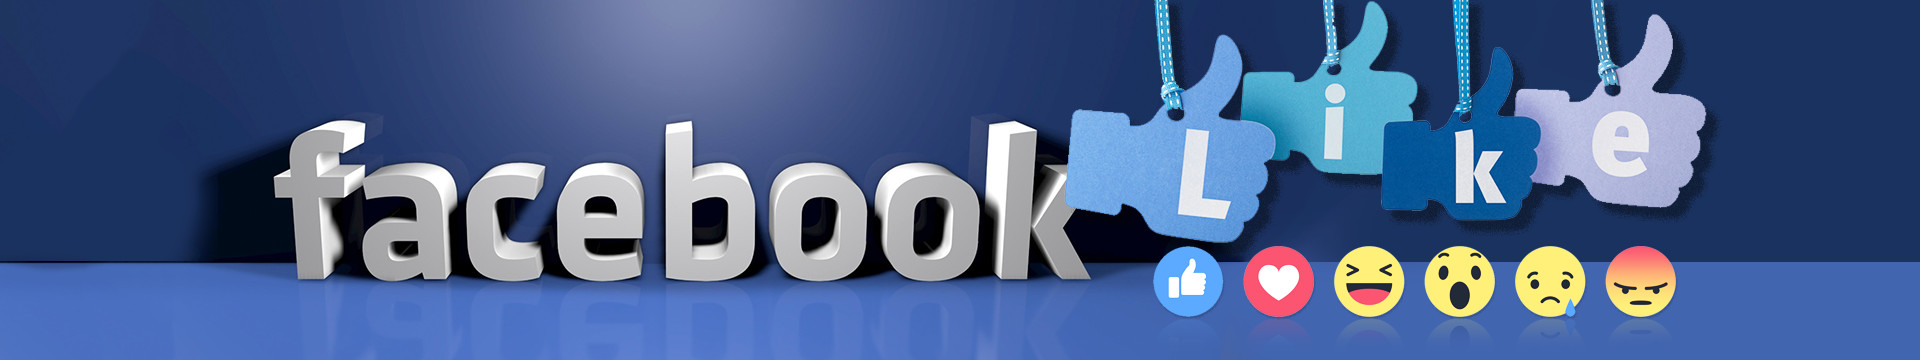 Facebook Marketing Training Courses - Proideators Digital Marketing Course Training Institute